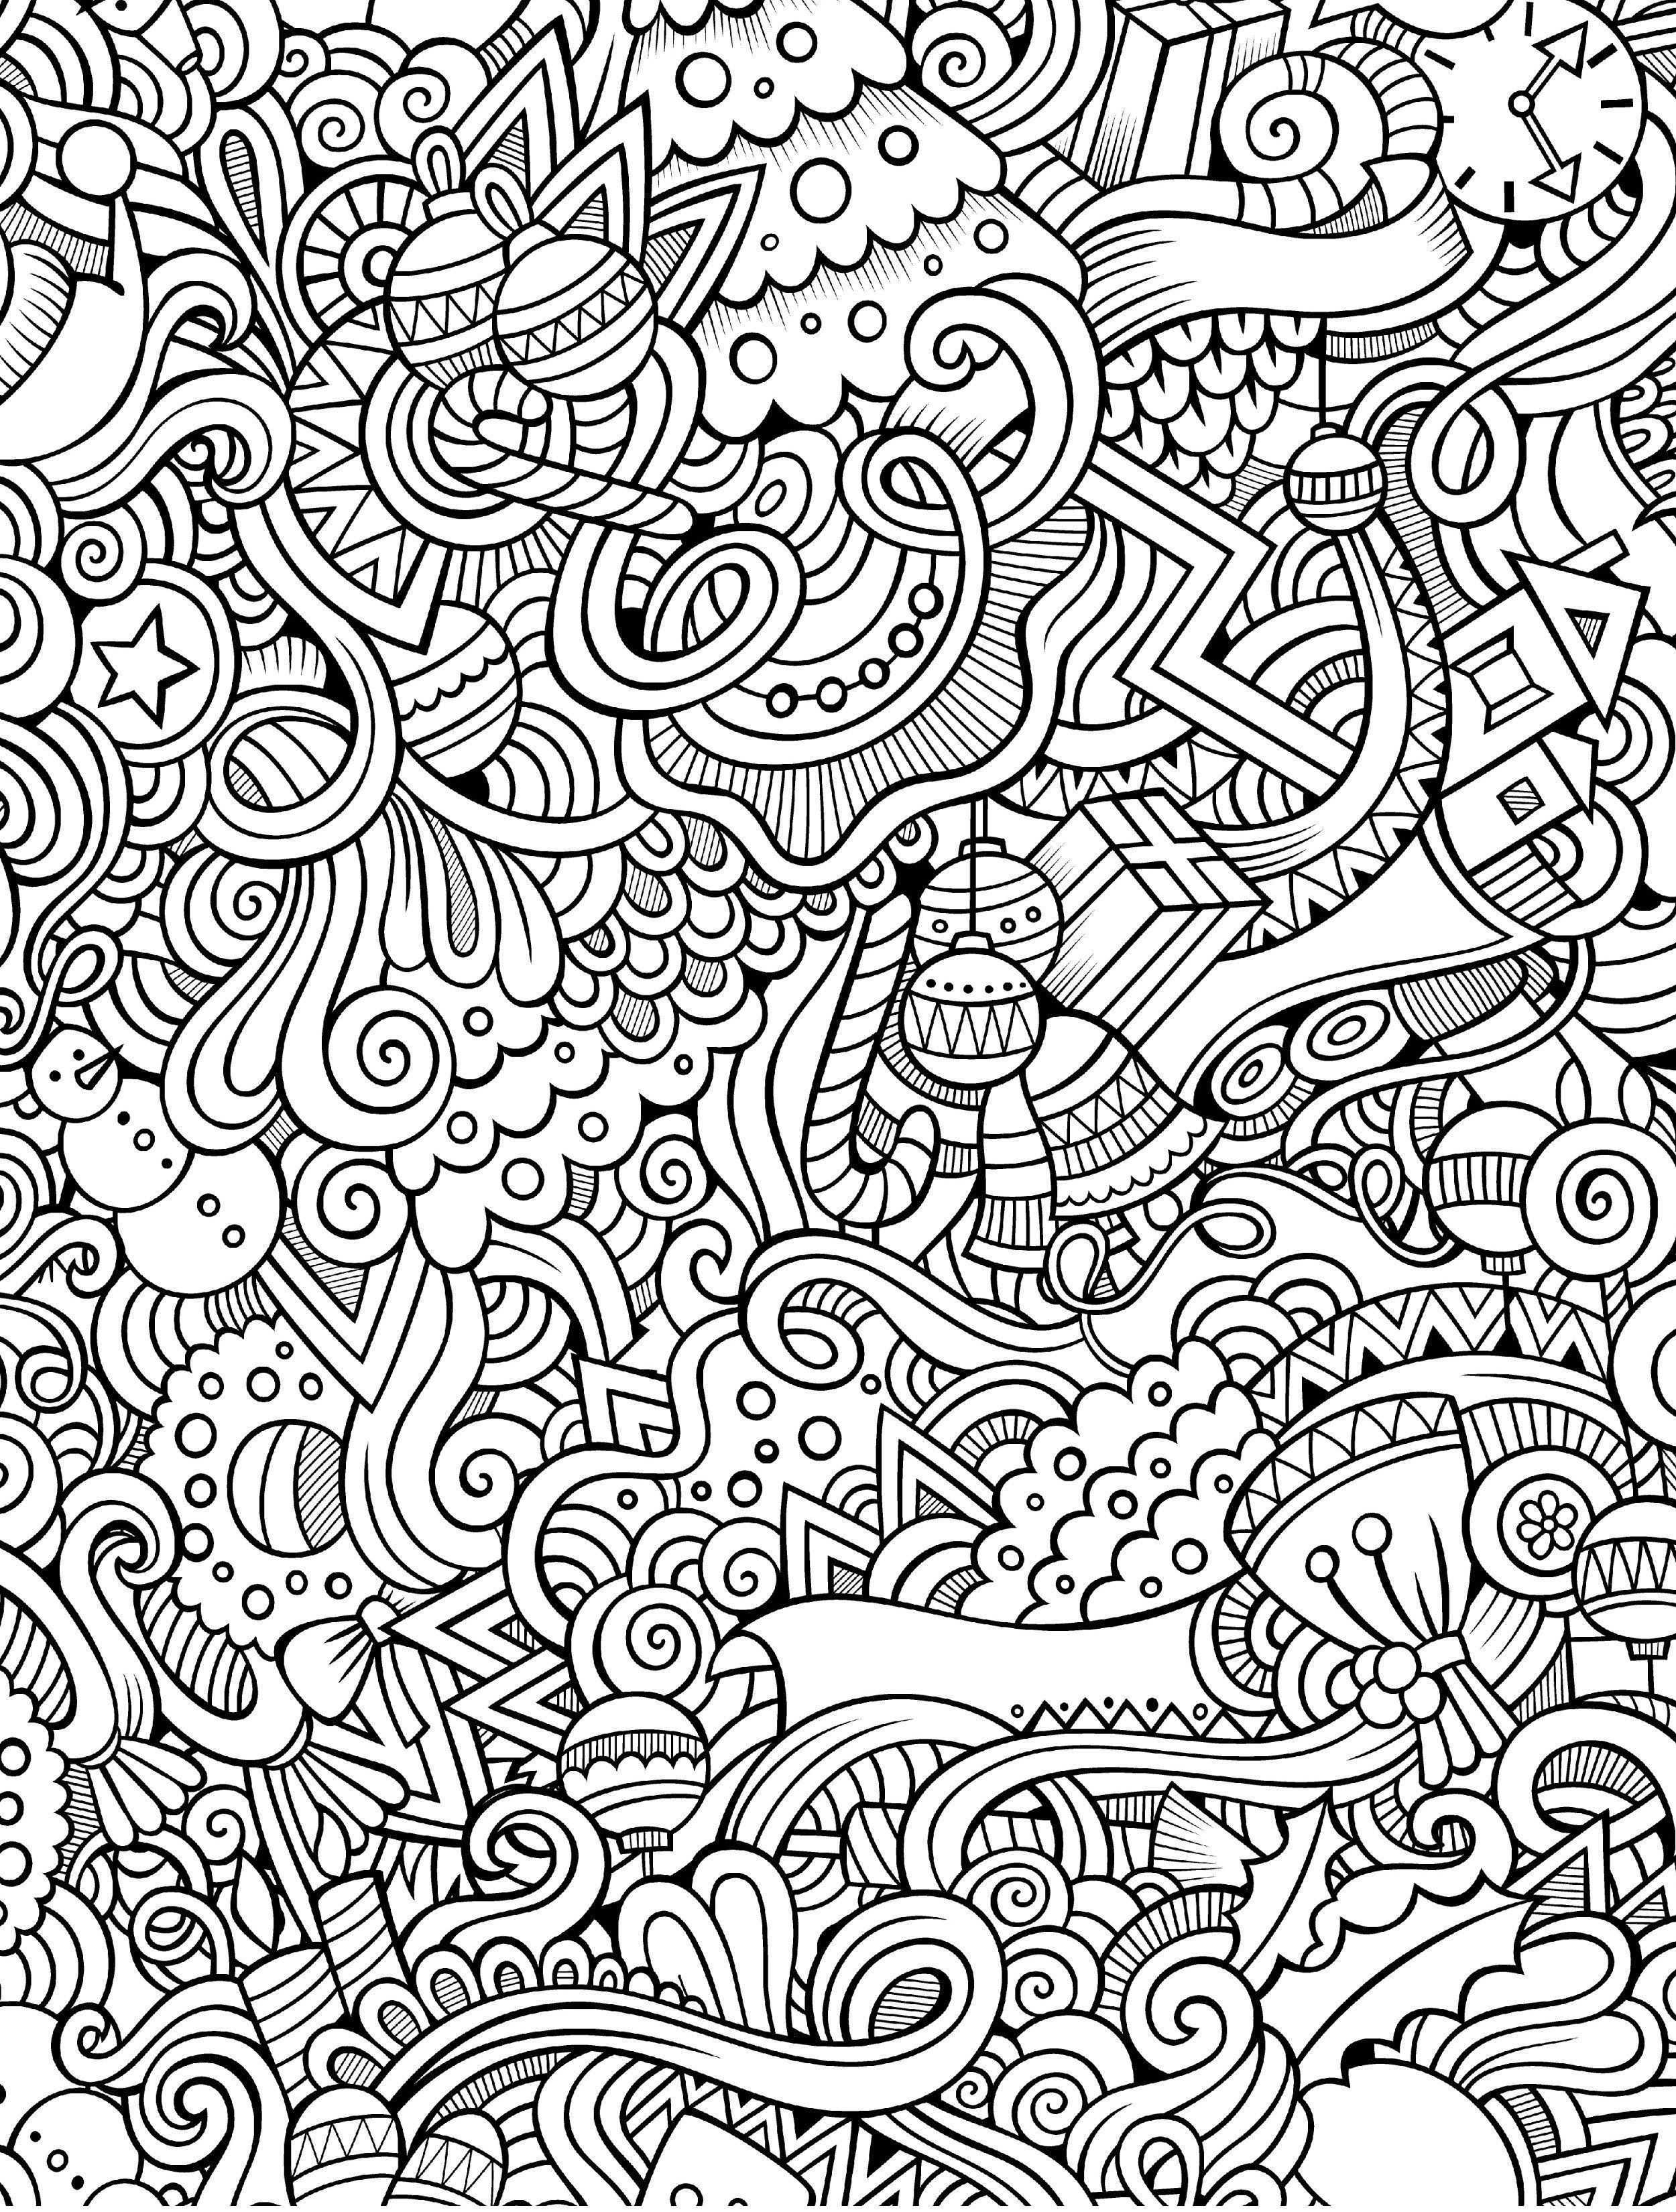 10 Free Printable Holiday Adult Coloring Pages | Coloring Pages - Free Printable Coloring Pages For Adults Pdf